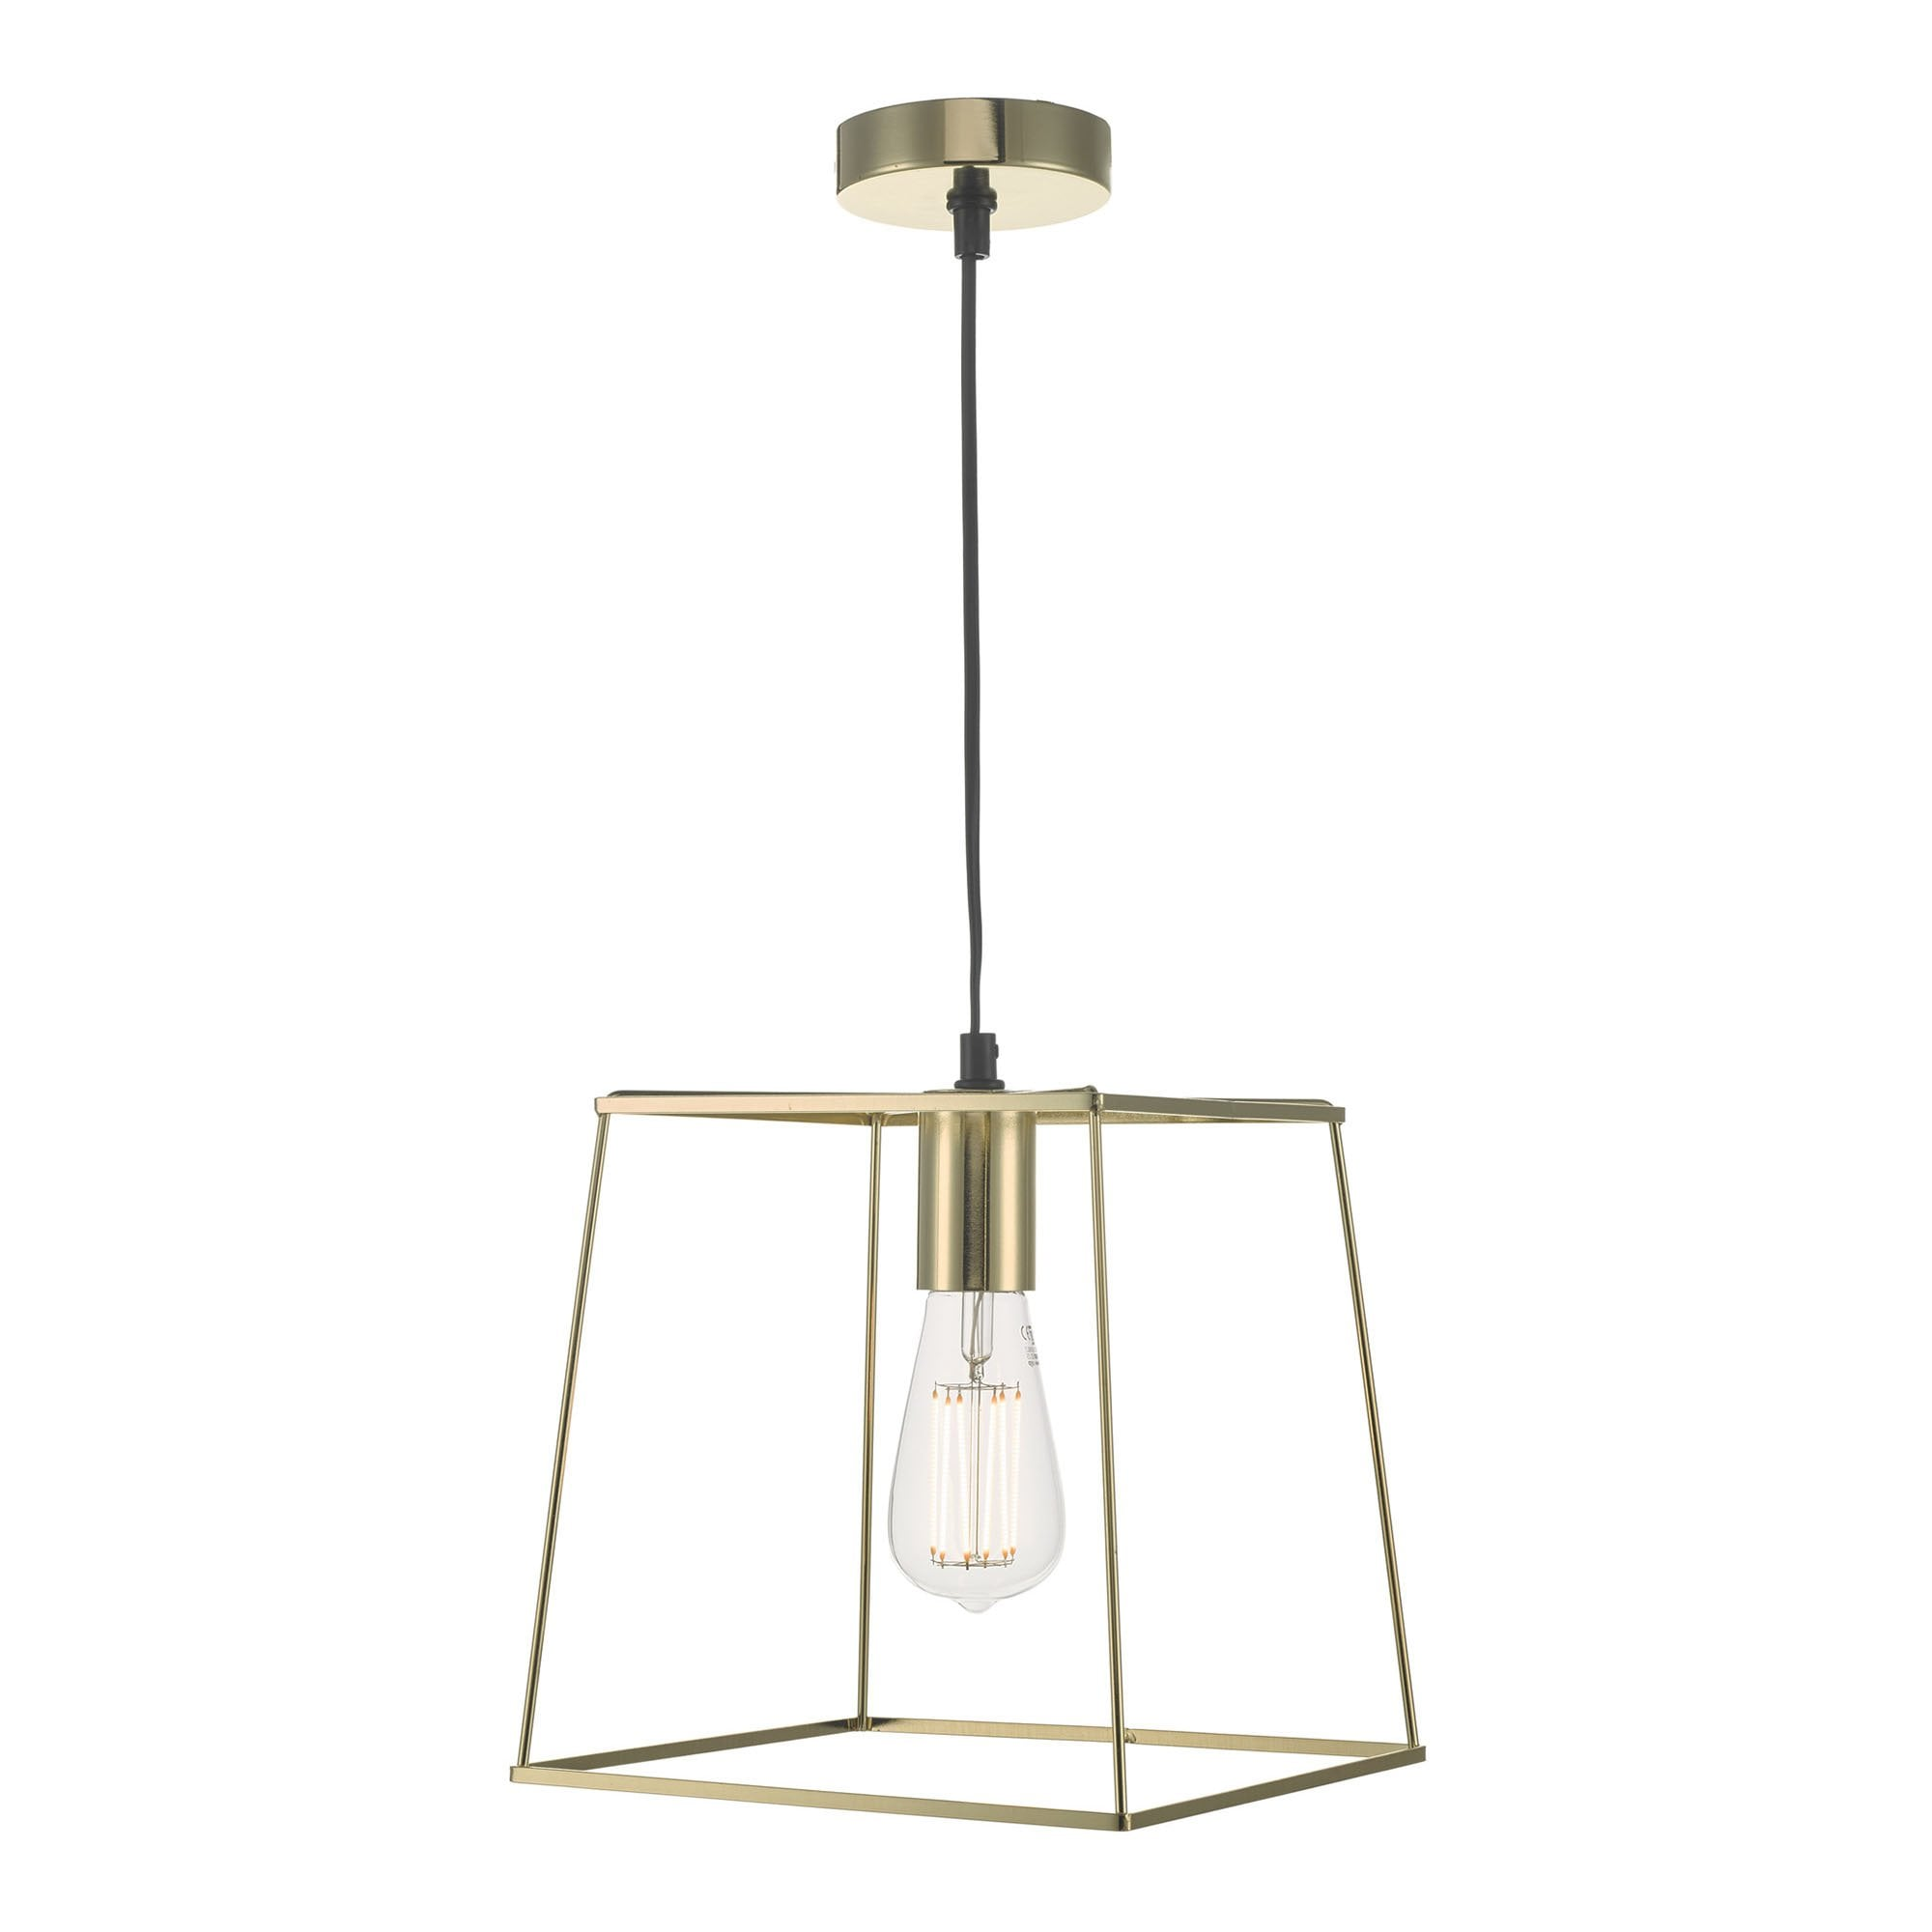 Dar Lighting Tower Contemporary Ceiling Pendant Light In Gold Finish Tow0135 Lighting From The Home Lighting Centre Uk